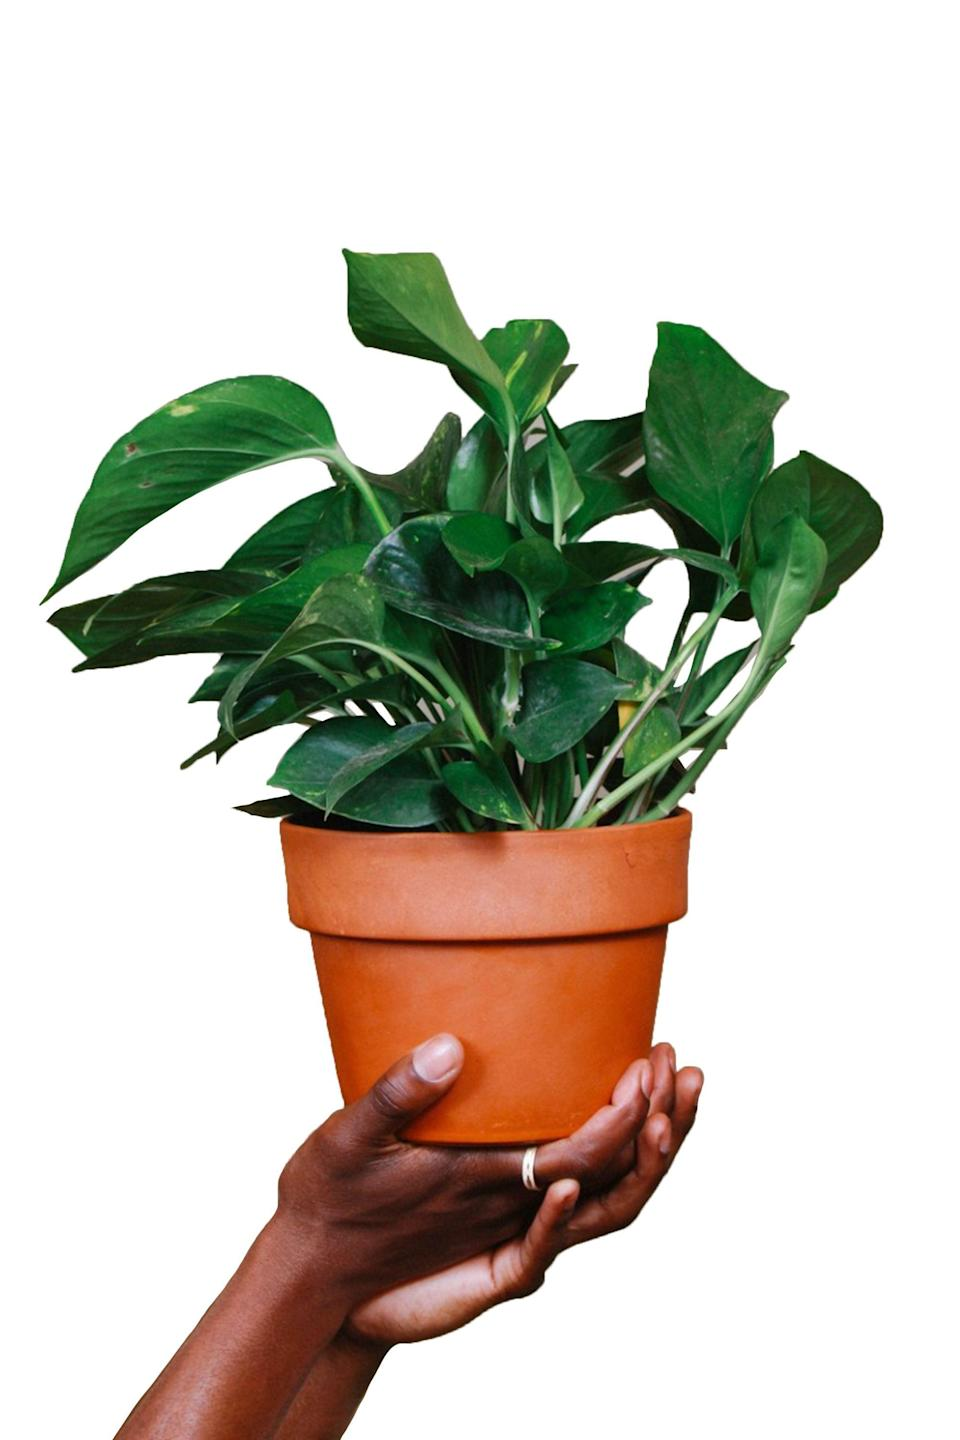 """<p><strong>Grounded Plants</strong></p><p>grounded-plants.com</p><p><strong>$20.00</strong></p><p><a href=""""https://grounded-plants.com/products/golden-pothos"""" rel=""""nofollow noopener"""" target=""""_blank"""" data-ylk=""""slk:Shop Now"""" class=""""link rapid-noclick-resp"""">Shop Now</a></p><p>Give the literal gift of life with a new houseplant—or even <a href=""""https://backtotheroots.com/collections/organic-seeds/products/organic-herb-garden-variety-pack"""" rel=""""nofollow noopener"""" target=""""_blank"""" data-ylk=""""slk:a packet of seeds"""" class=""""link rapid-noclick-resp"""">a packet of seeds</a> for your DIY friend. If the plant ever dies (sad), it can be composted and the pot reused.</p>"""